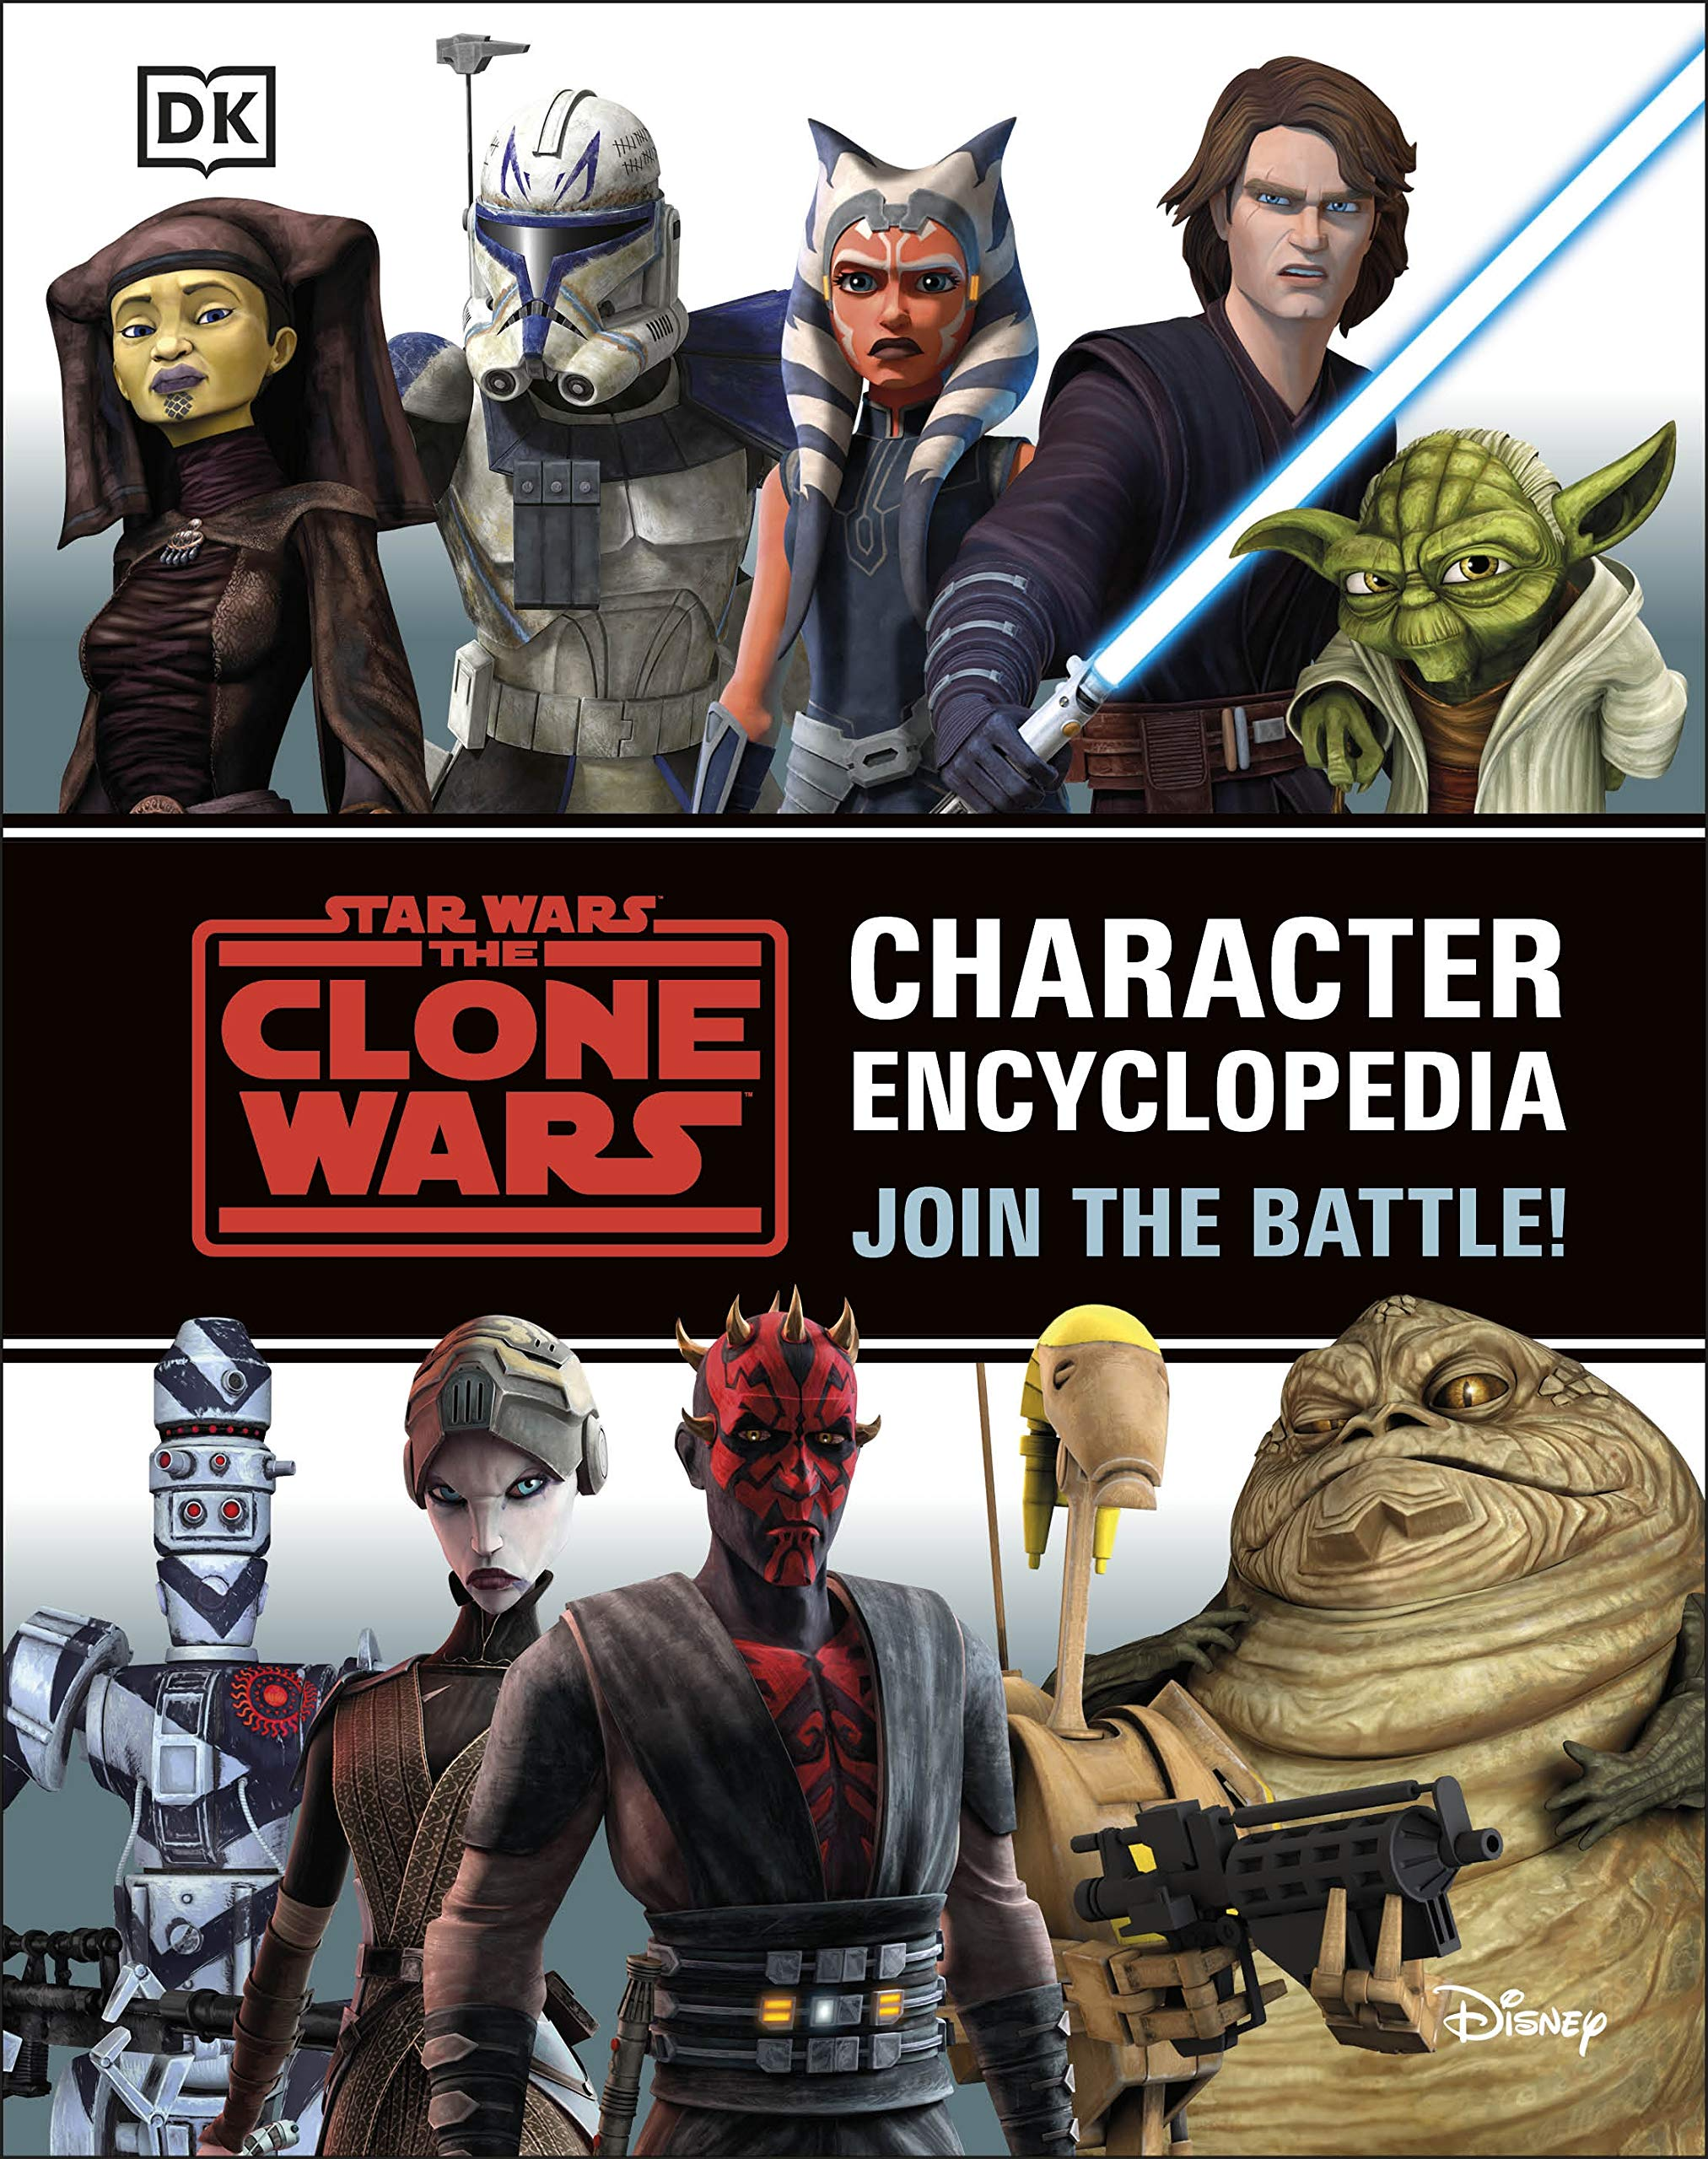 Star Wars: The Clone Wars: Character Encyclopedia - Join the Battle